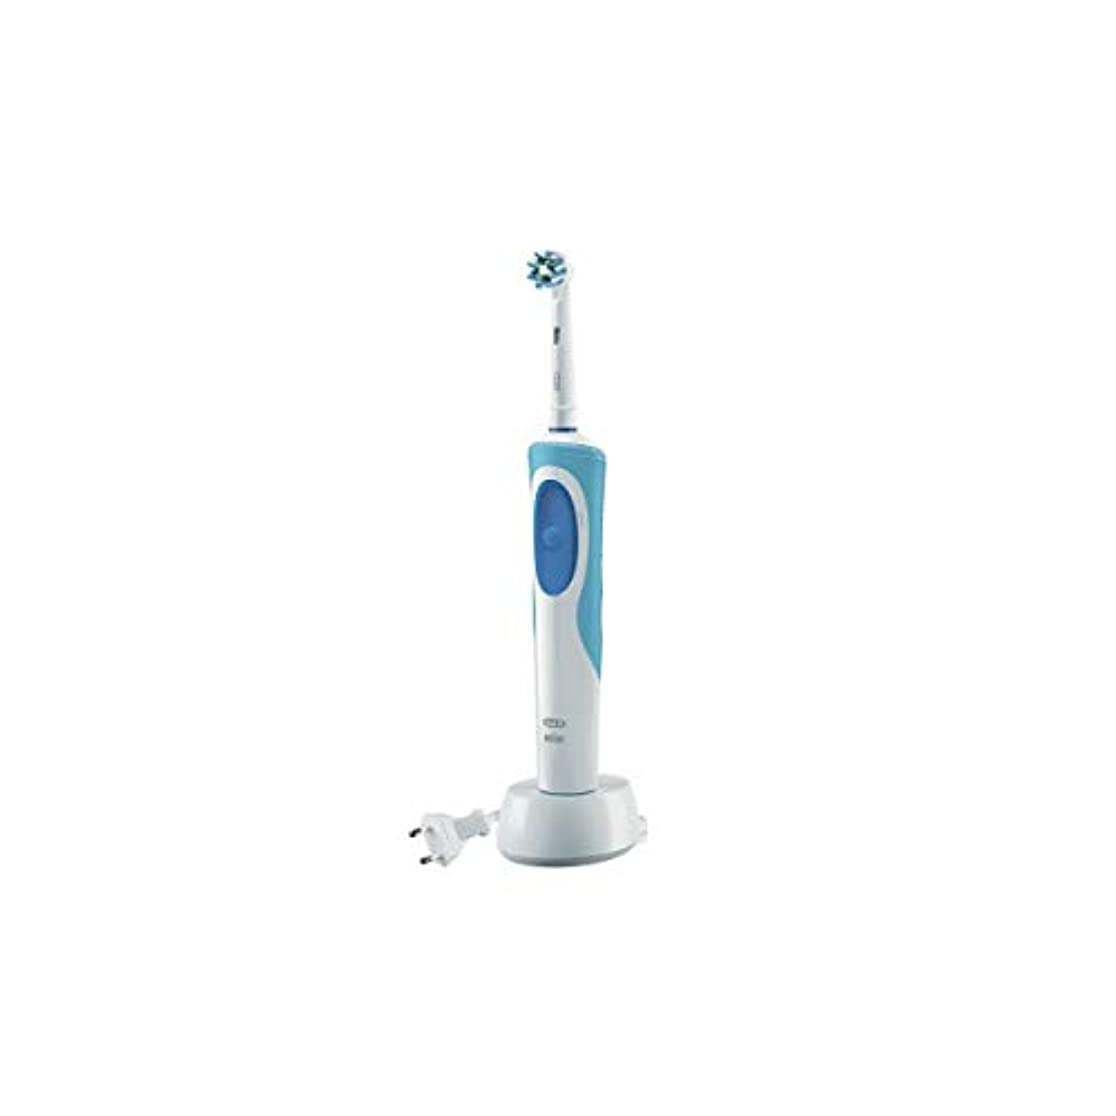 債権者戻すフレアOral B Vitality Cross Action Electric Toothbrush [並行輸入品]